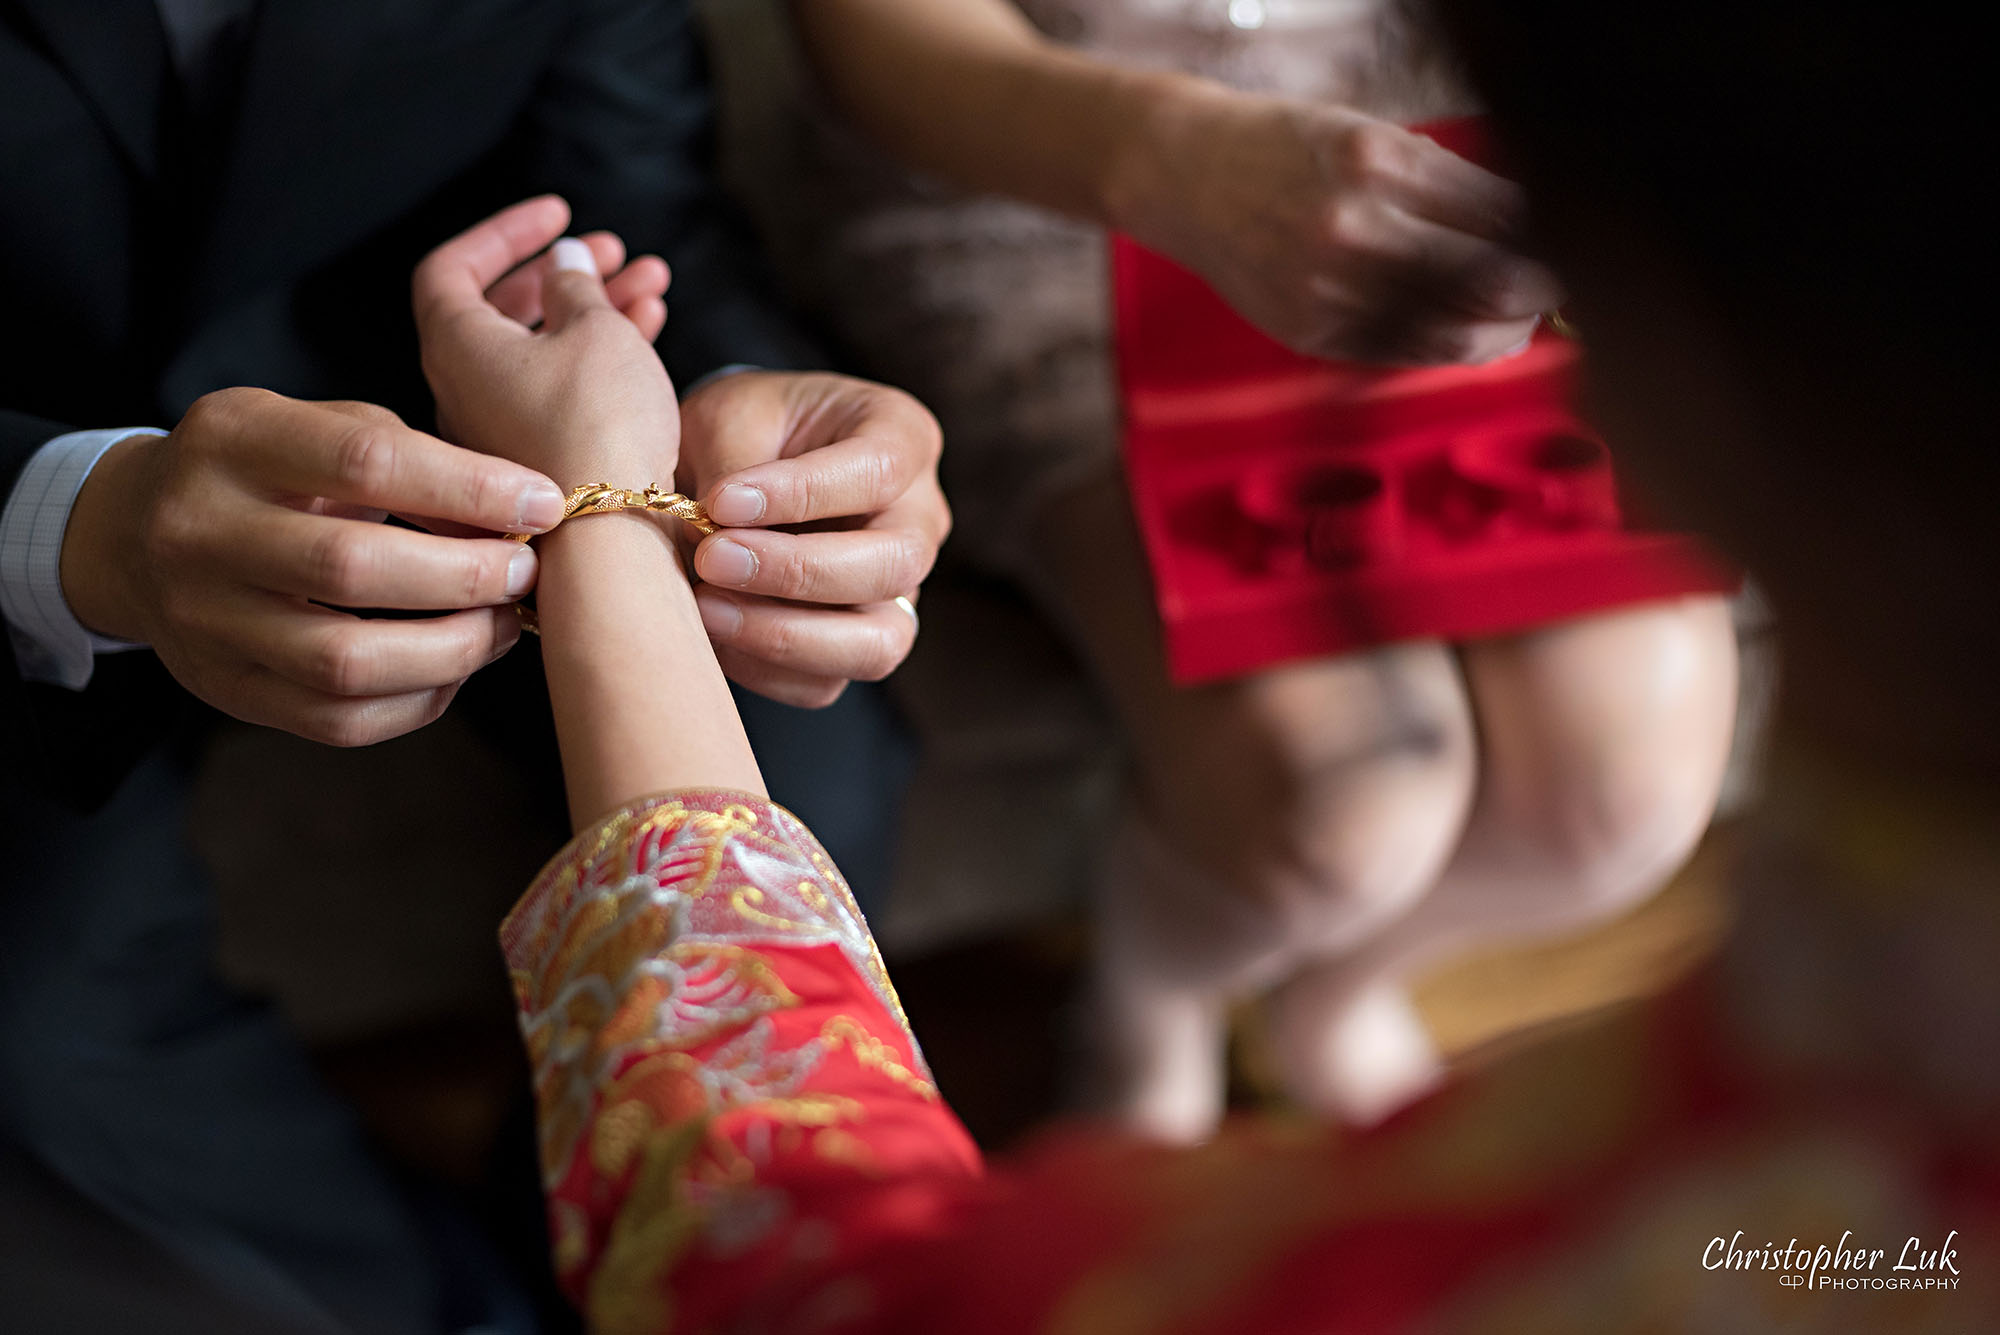 Christopher Luk Photography Toronto Wedding Photographer Chinese Tea Ceremony Bride Groom Mother Father Candid Natural Photojournalistic Happy Smile Laughing Ring Gold Bracelet Necklace Jewelry Jewellery